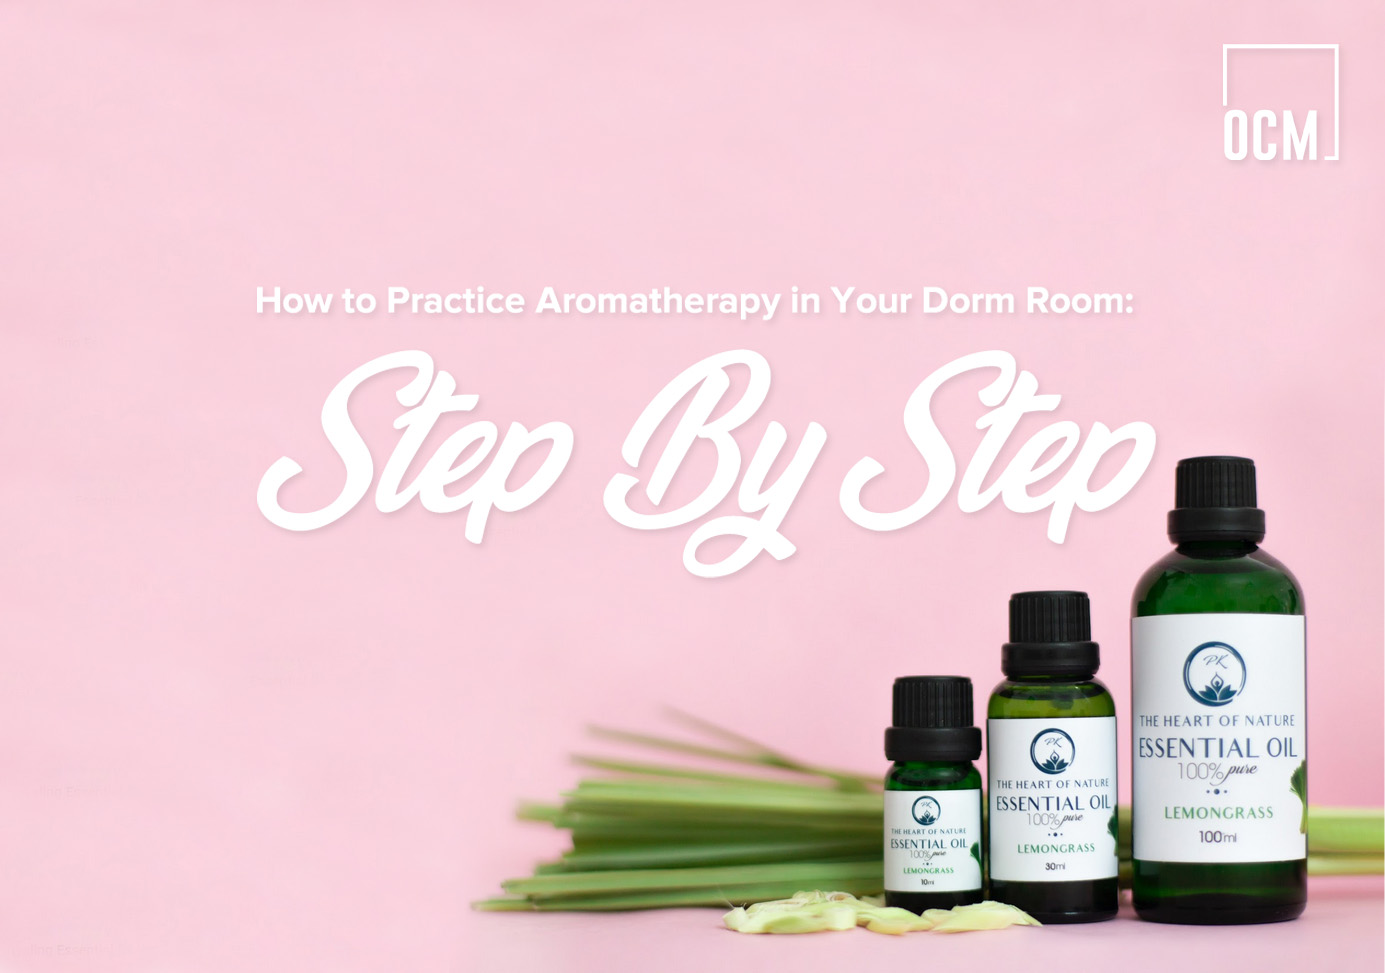 How to Practice Aromatherapy in Your Dorm Room